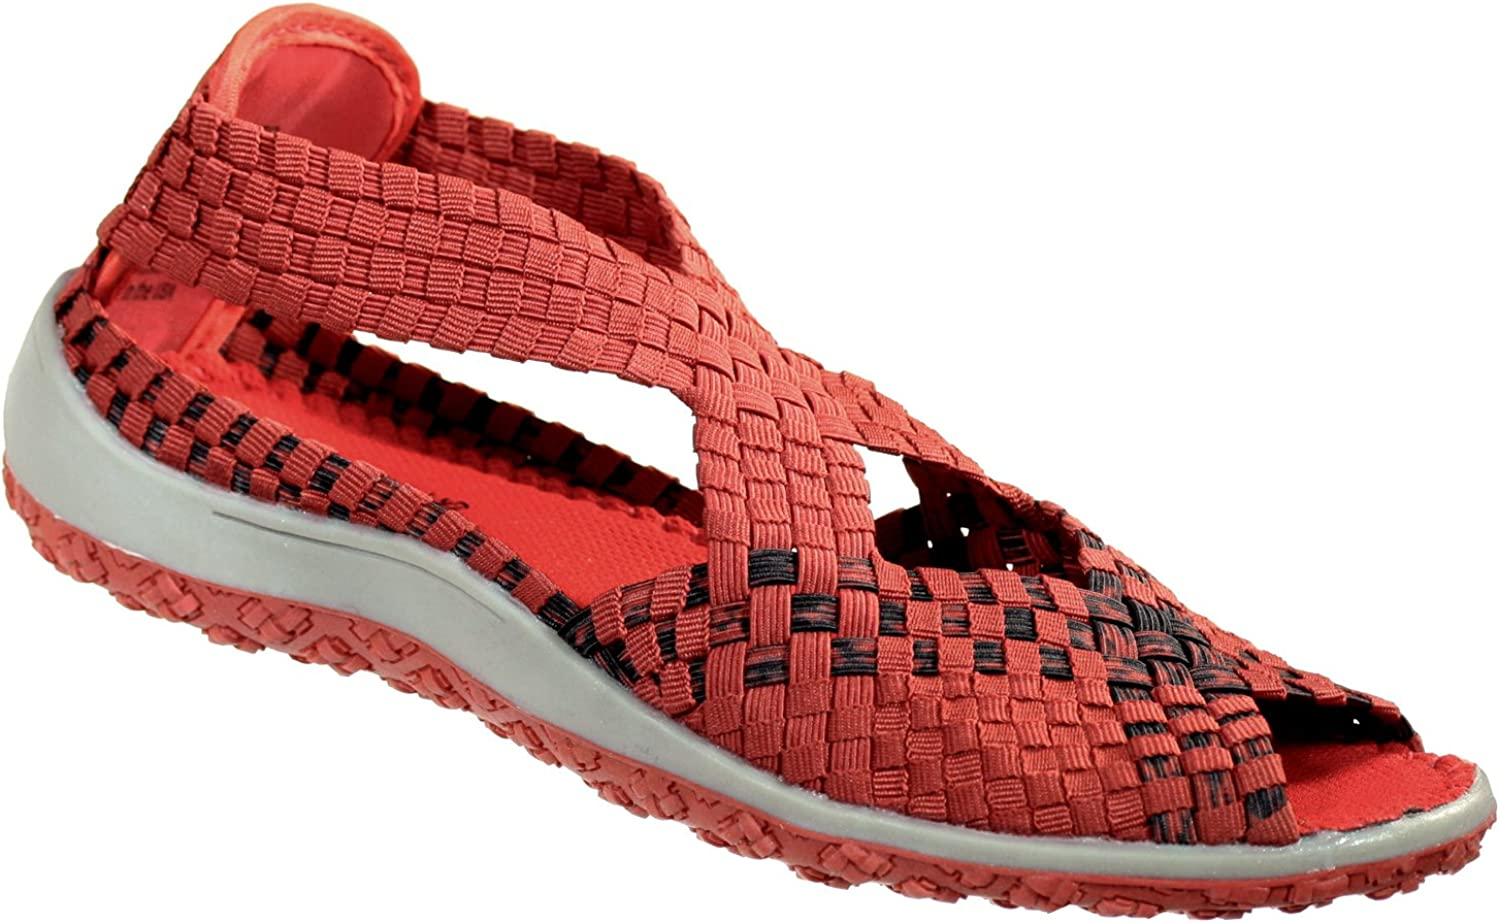 Zee Alexis Women's Saletto Woven Sandal Red Black